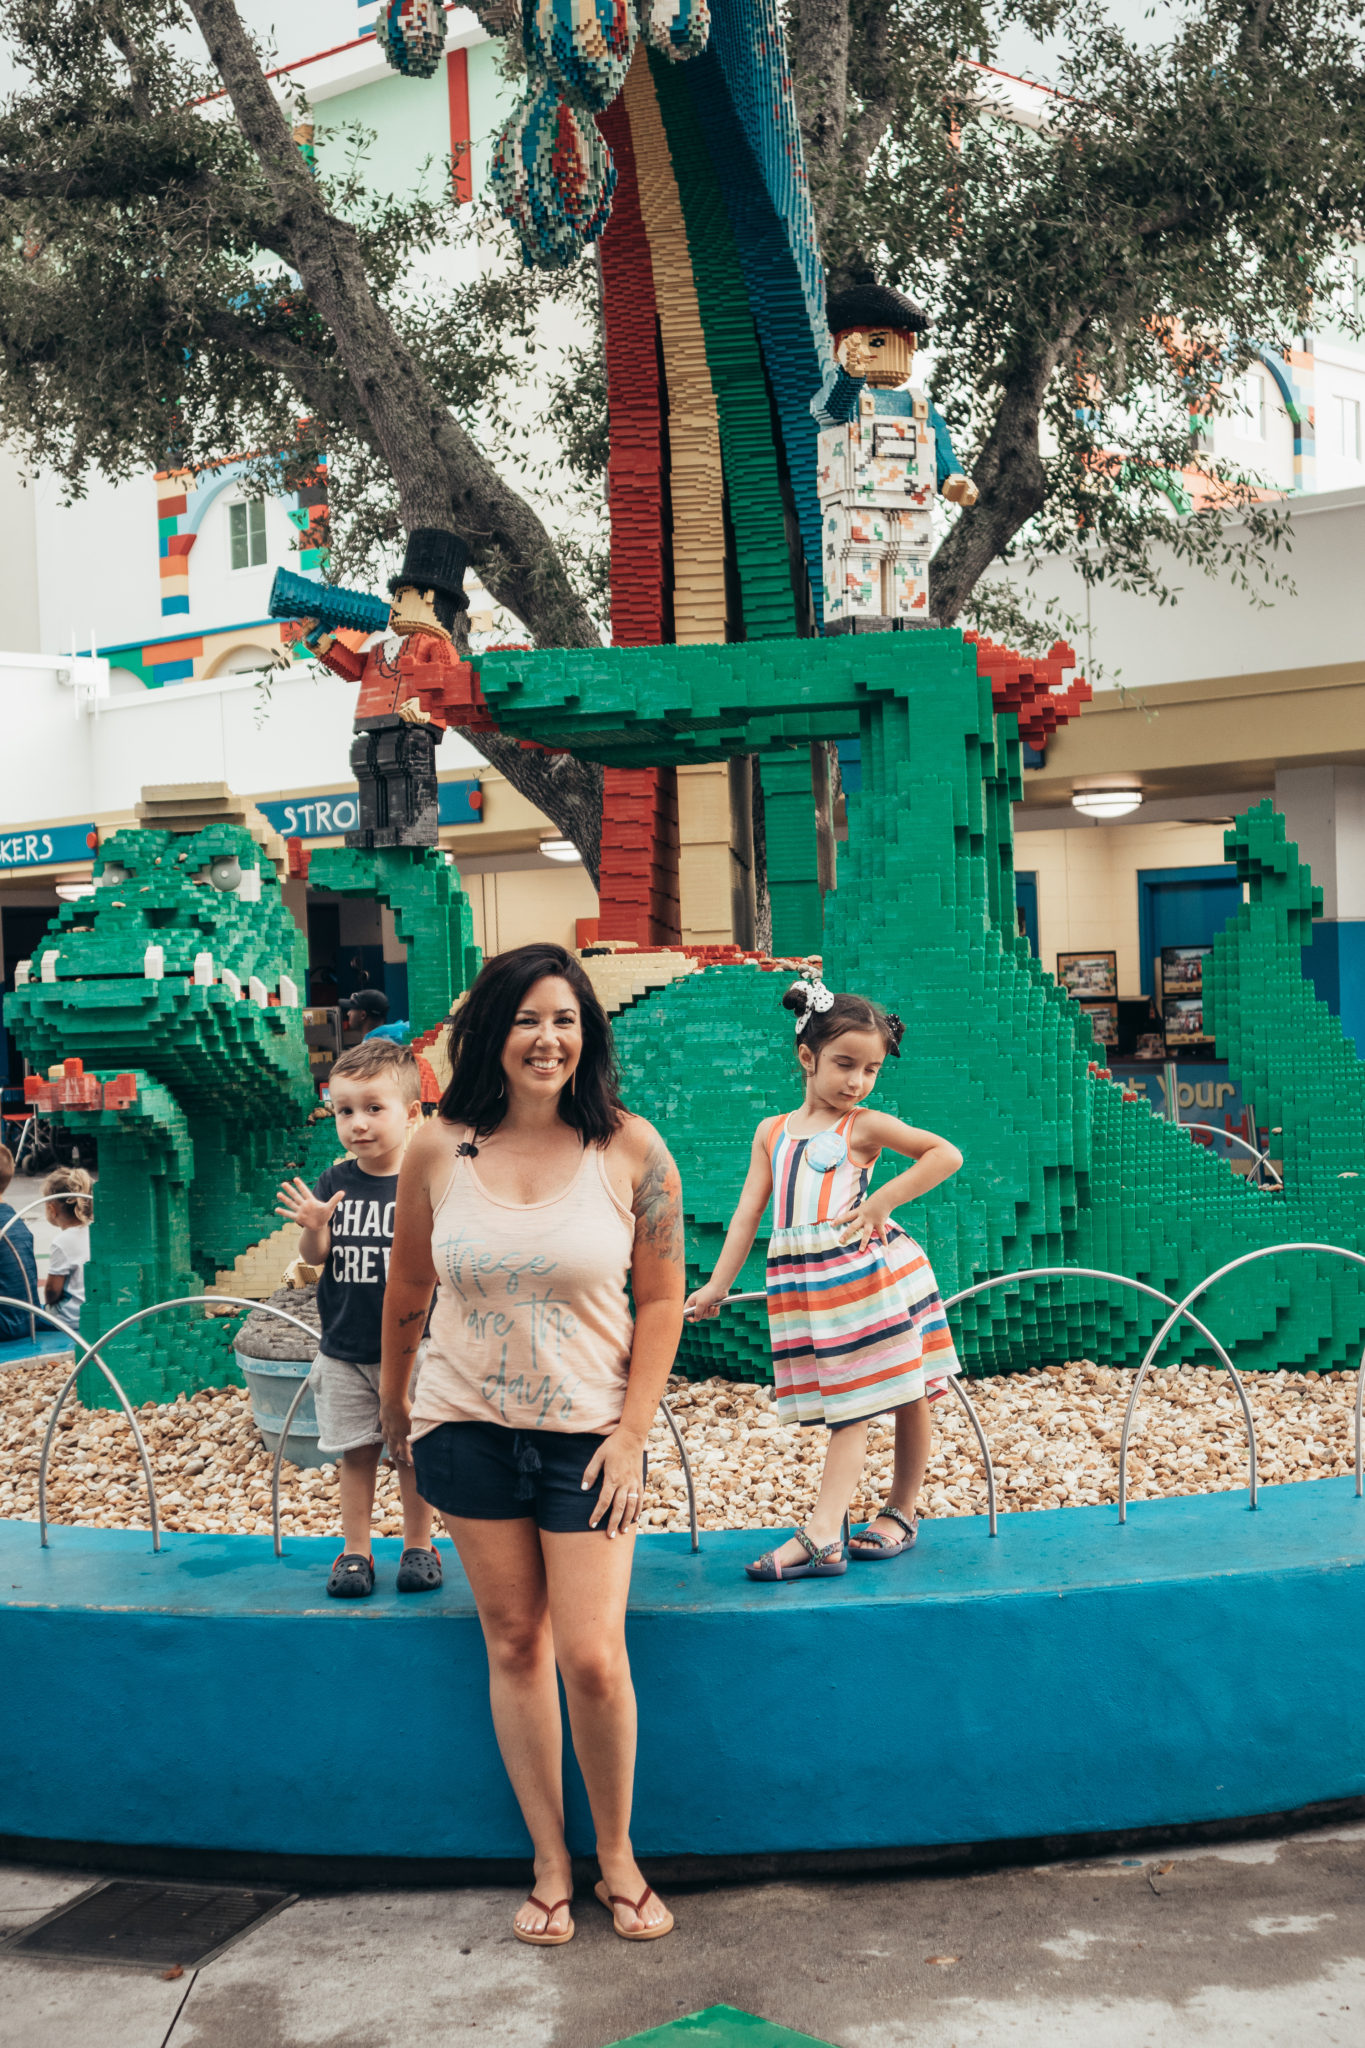 WHAT TO EXPECT TAKING TODDLERS TO LEGOLAND FLORIDA, Tampa parenting blog mothers blog motherhood blog Florida travel blogger travel influencer healthy mom blogger spring hill florida lifestyle parenting blog best mom blog 2018 Disney blogger Disney travel blogger Orlando travel blogger Orlando mom blogger Orlando Instagram influencer